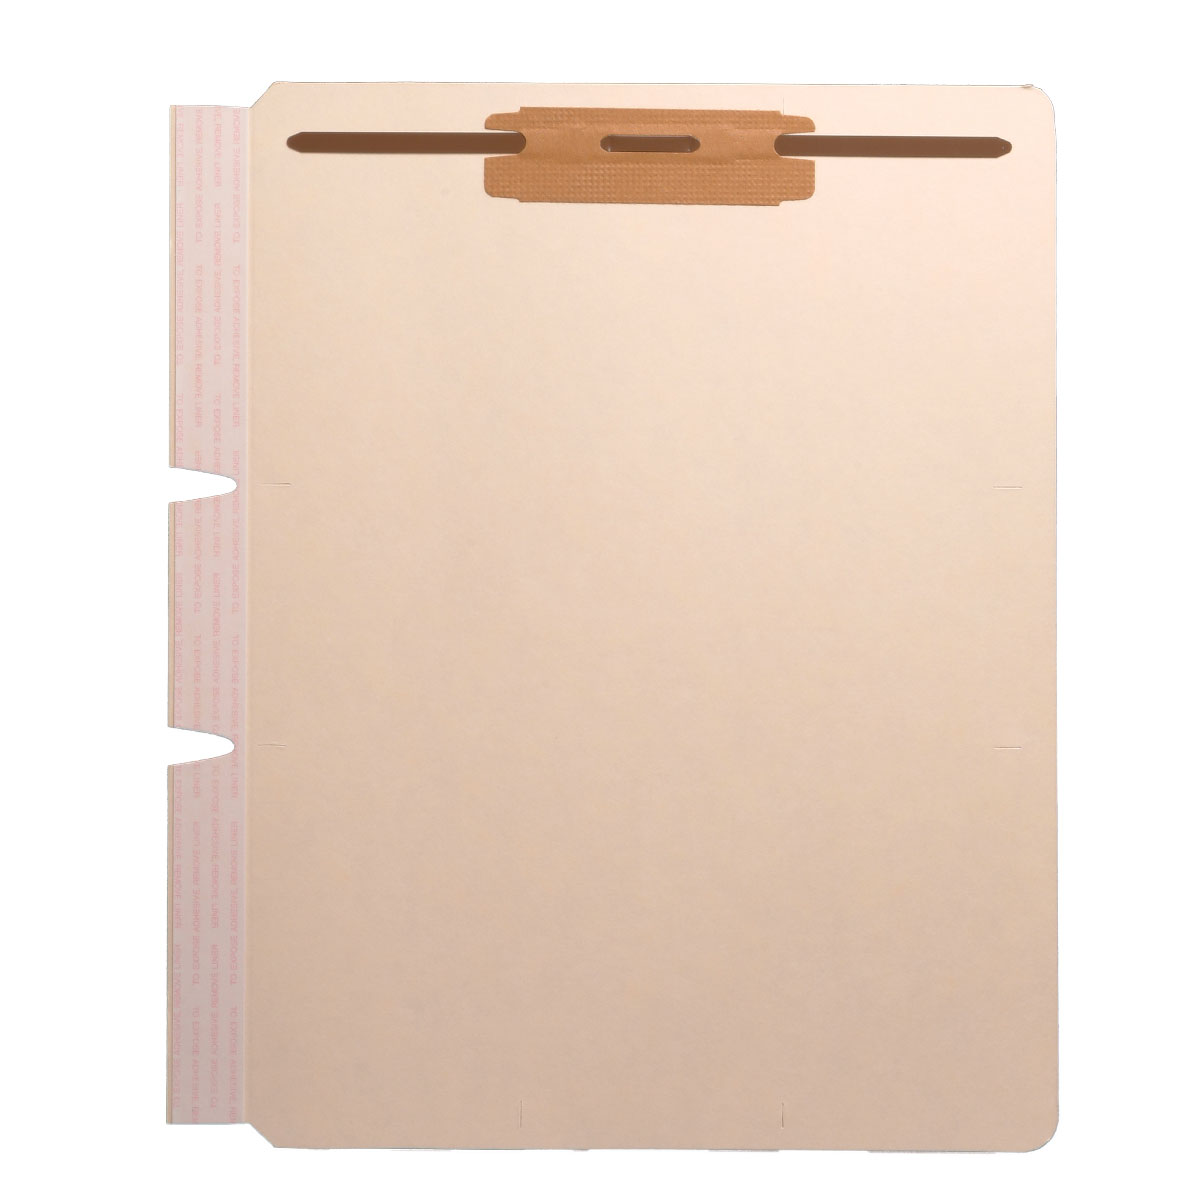 S-9143 - Self Adhesive Divider, Standard Side Flap, 2